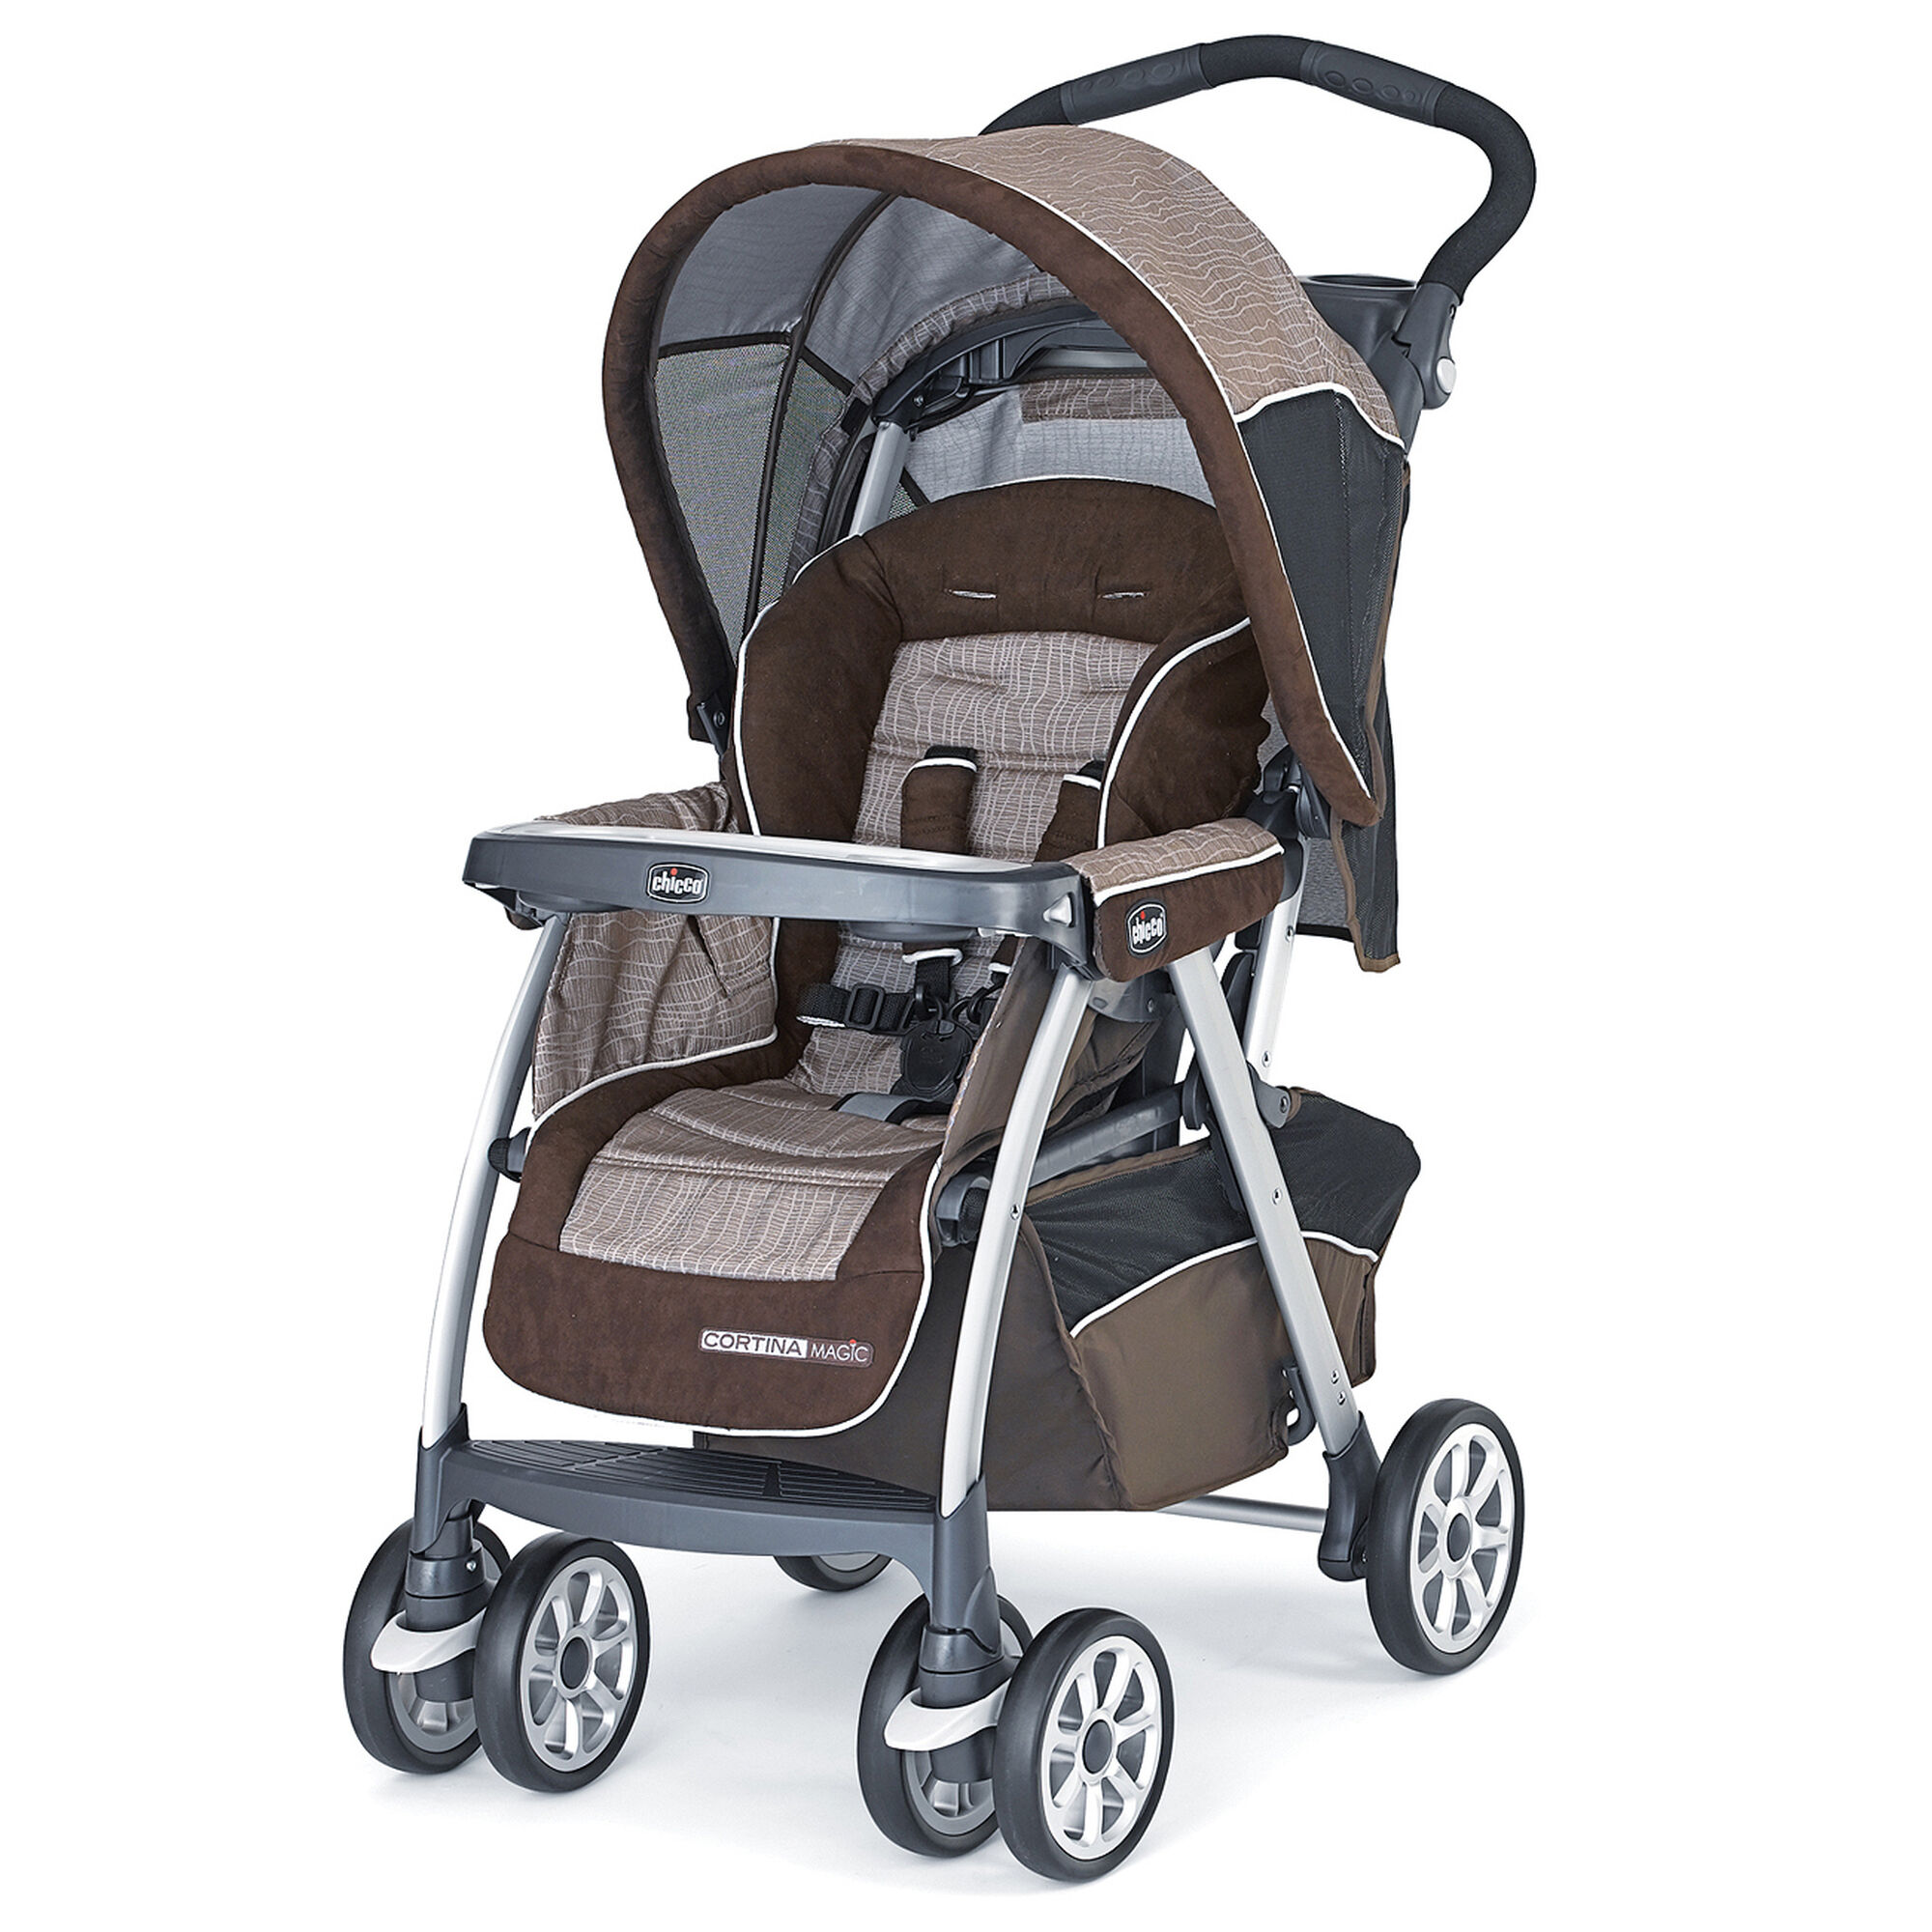 Ultra-lightweight, Full Featured The Graco LiteRider LX Travel System features an ultra-lightweight, fully featured stroller and the Graco SnugRide 30 Click Connect Infant Car Seat.